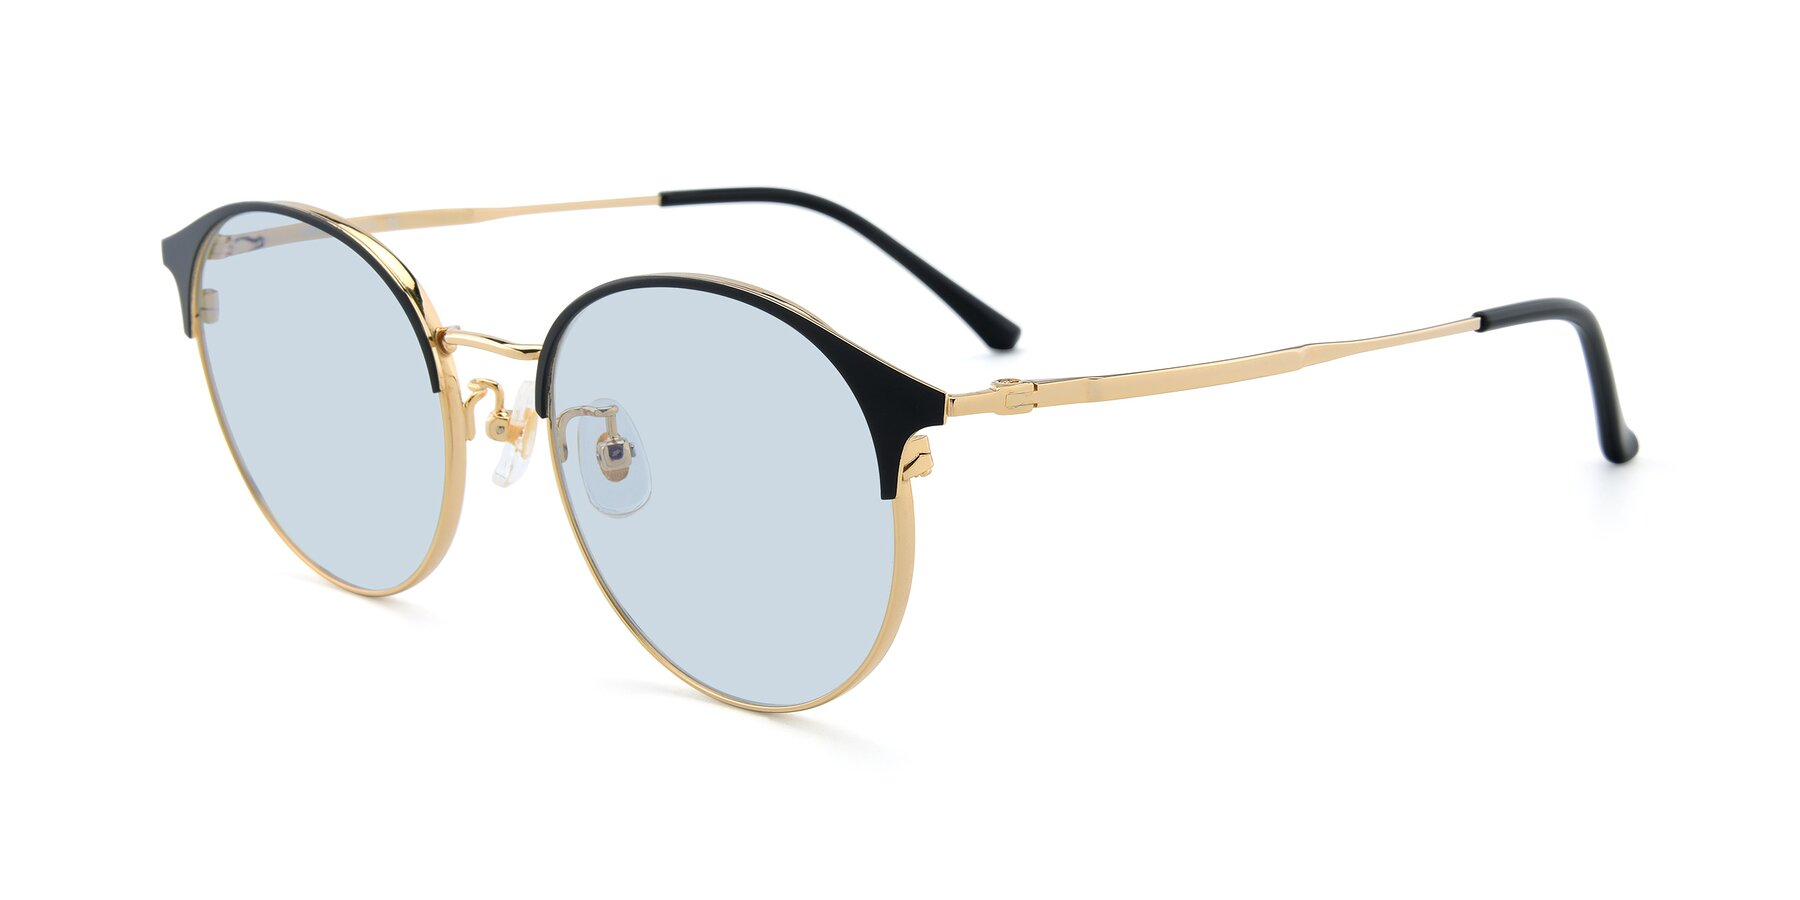 Angle of XC-8031 in Black-Gold with Light Blue Tinted Lenses